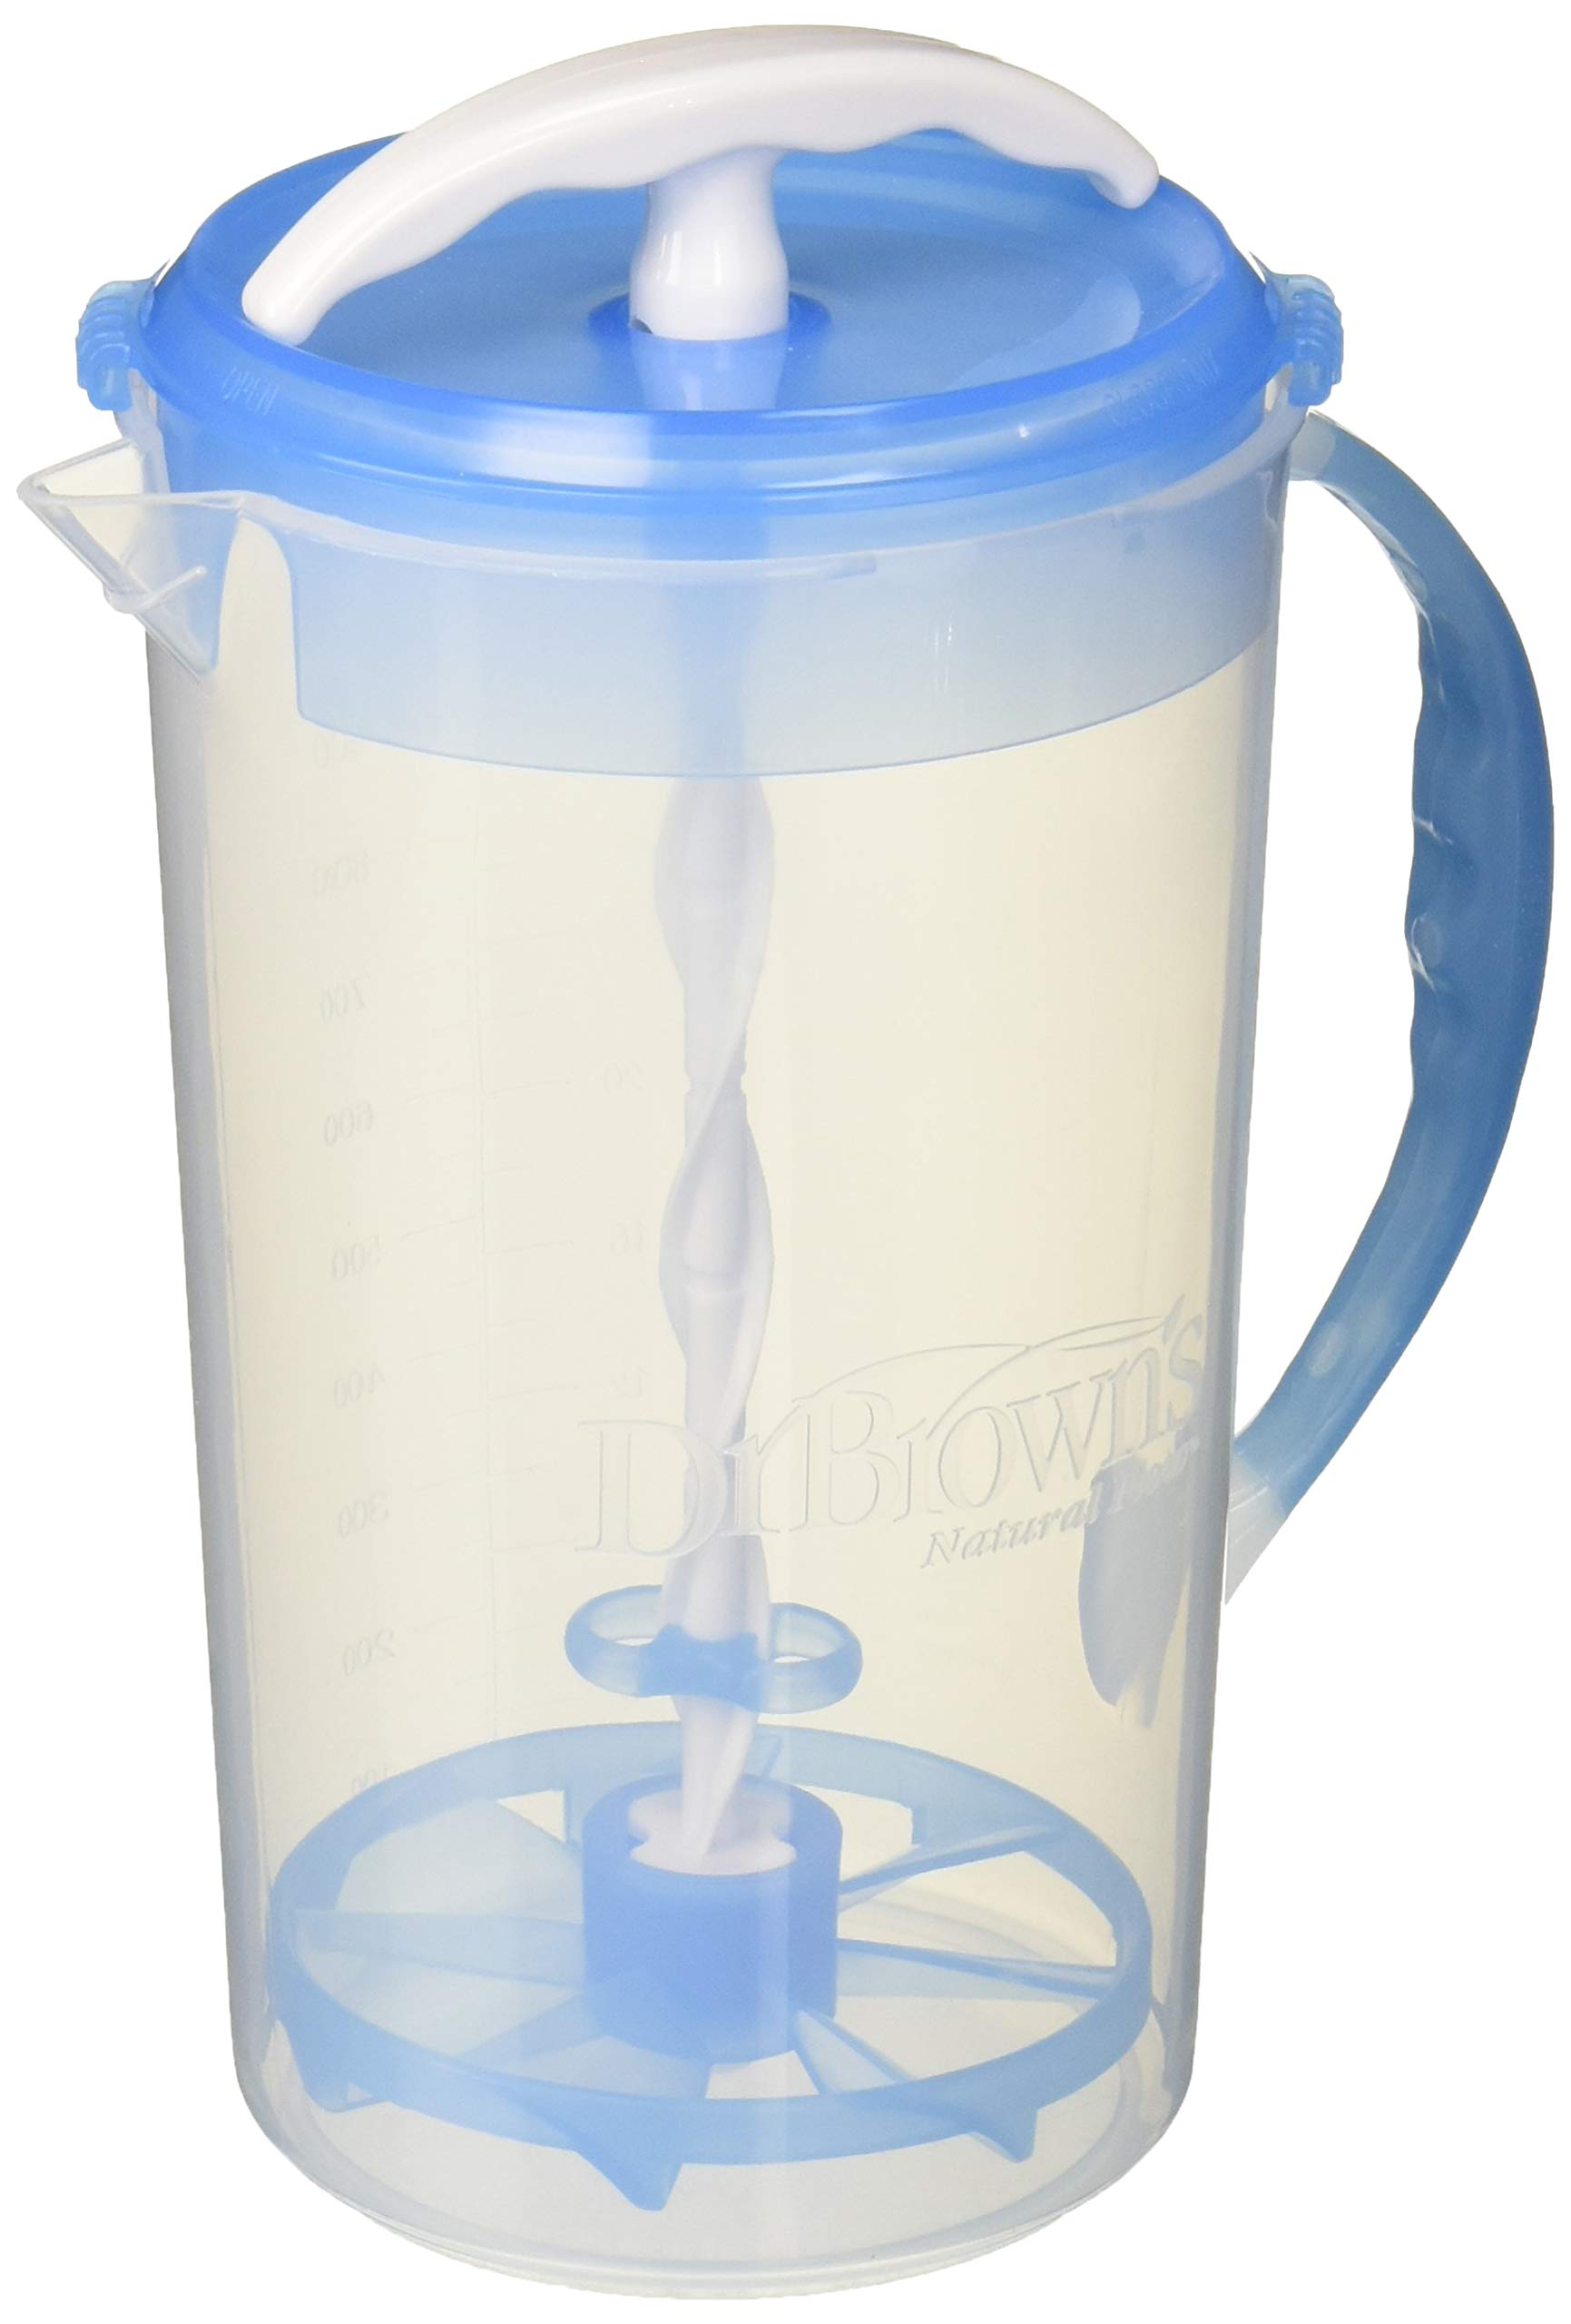 Dr. Brown's Formula Mixing Pitcher by Dr. Brown's